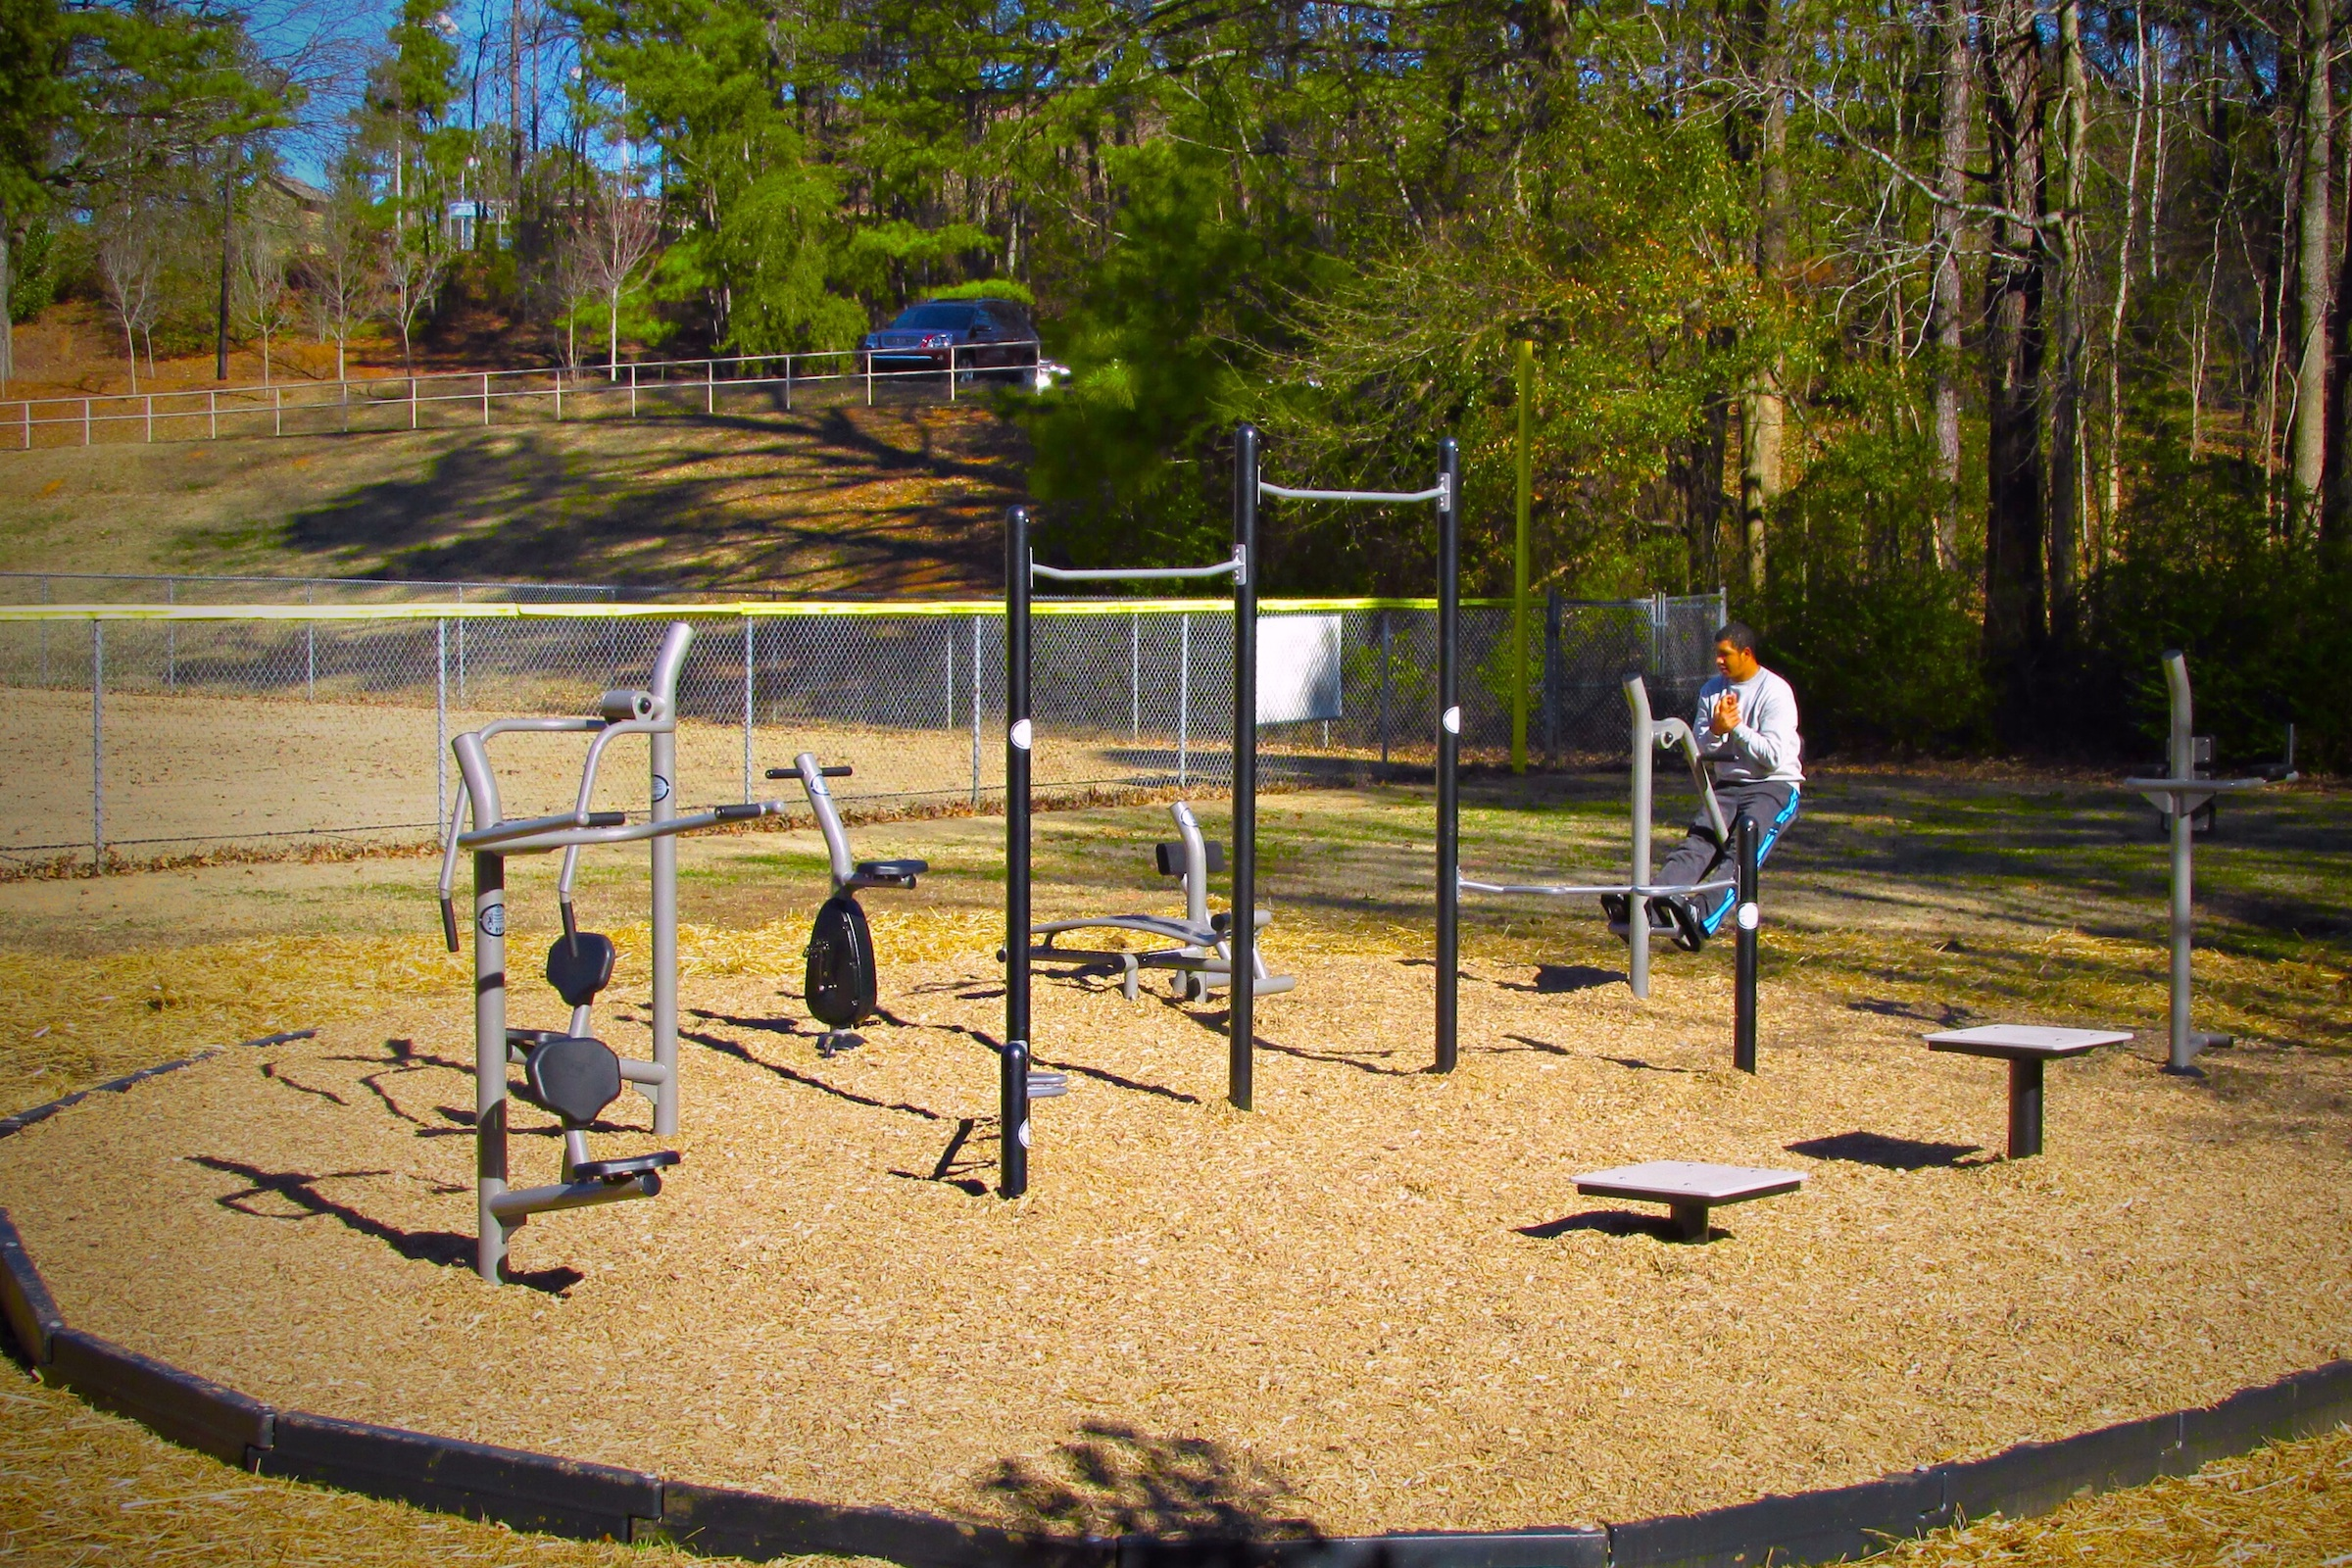 gametime fitness park in roswell georgia recognized as a national demonstration site for. Black Bedroom Furniture Sets. Home Design Ideas